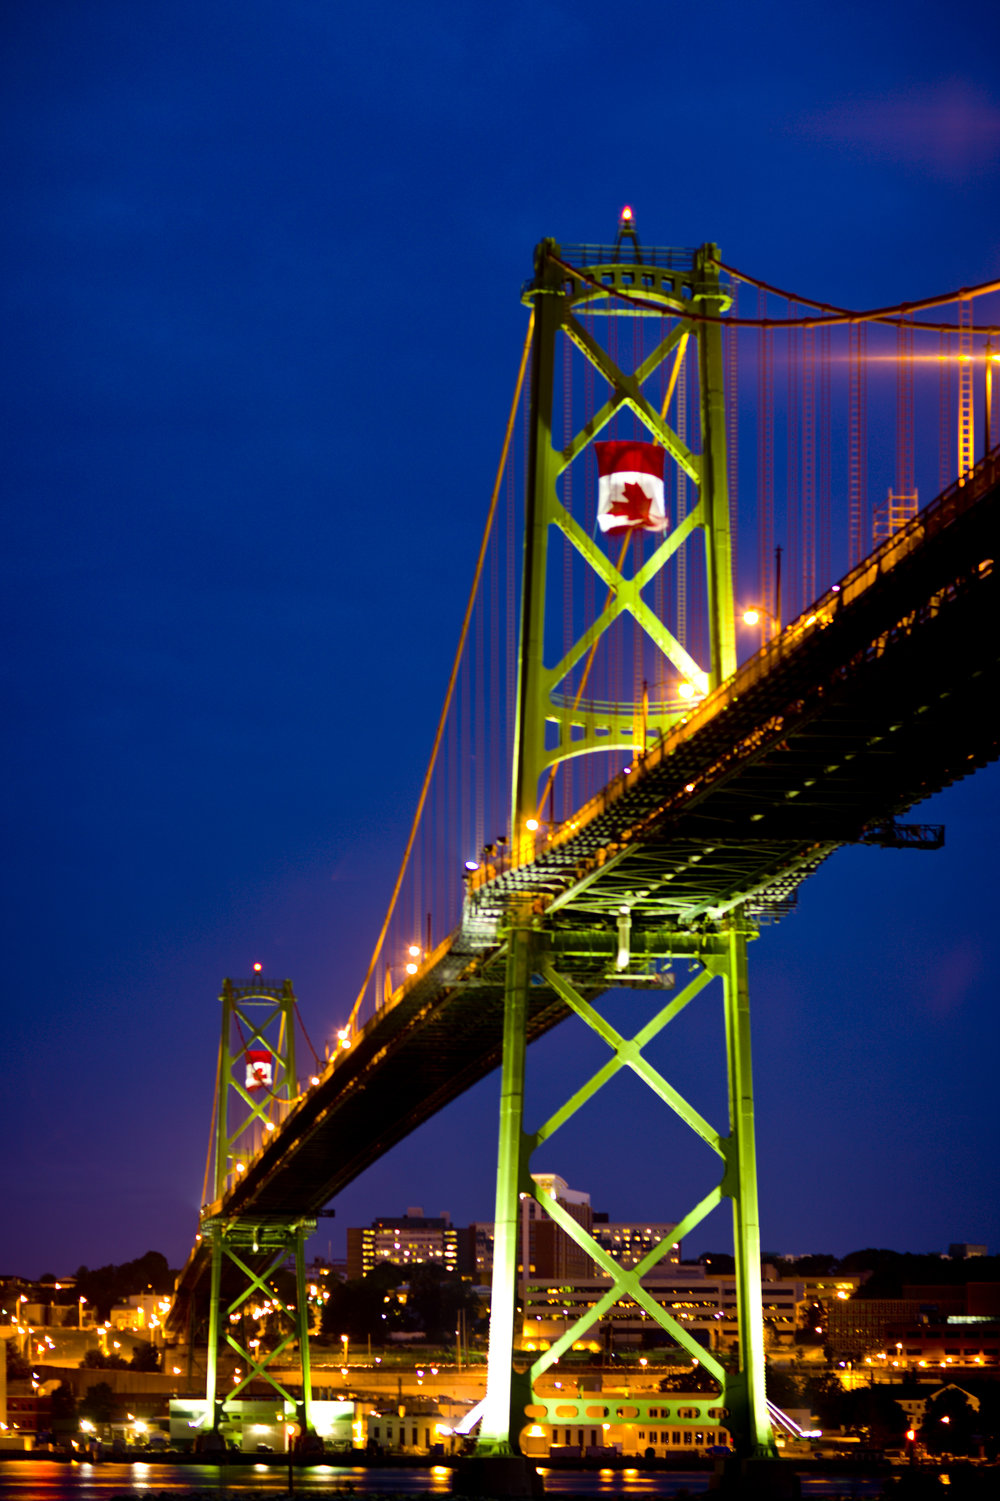 Angus_L._Macdonald_Bridge-1.jpg